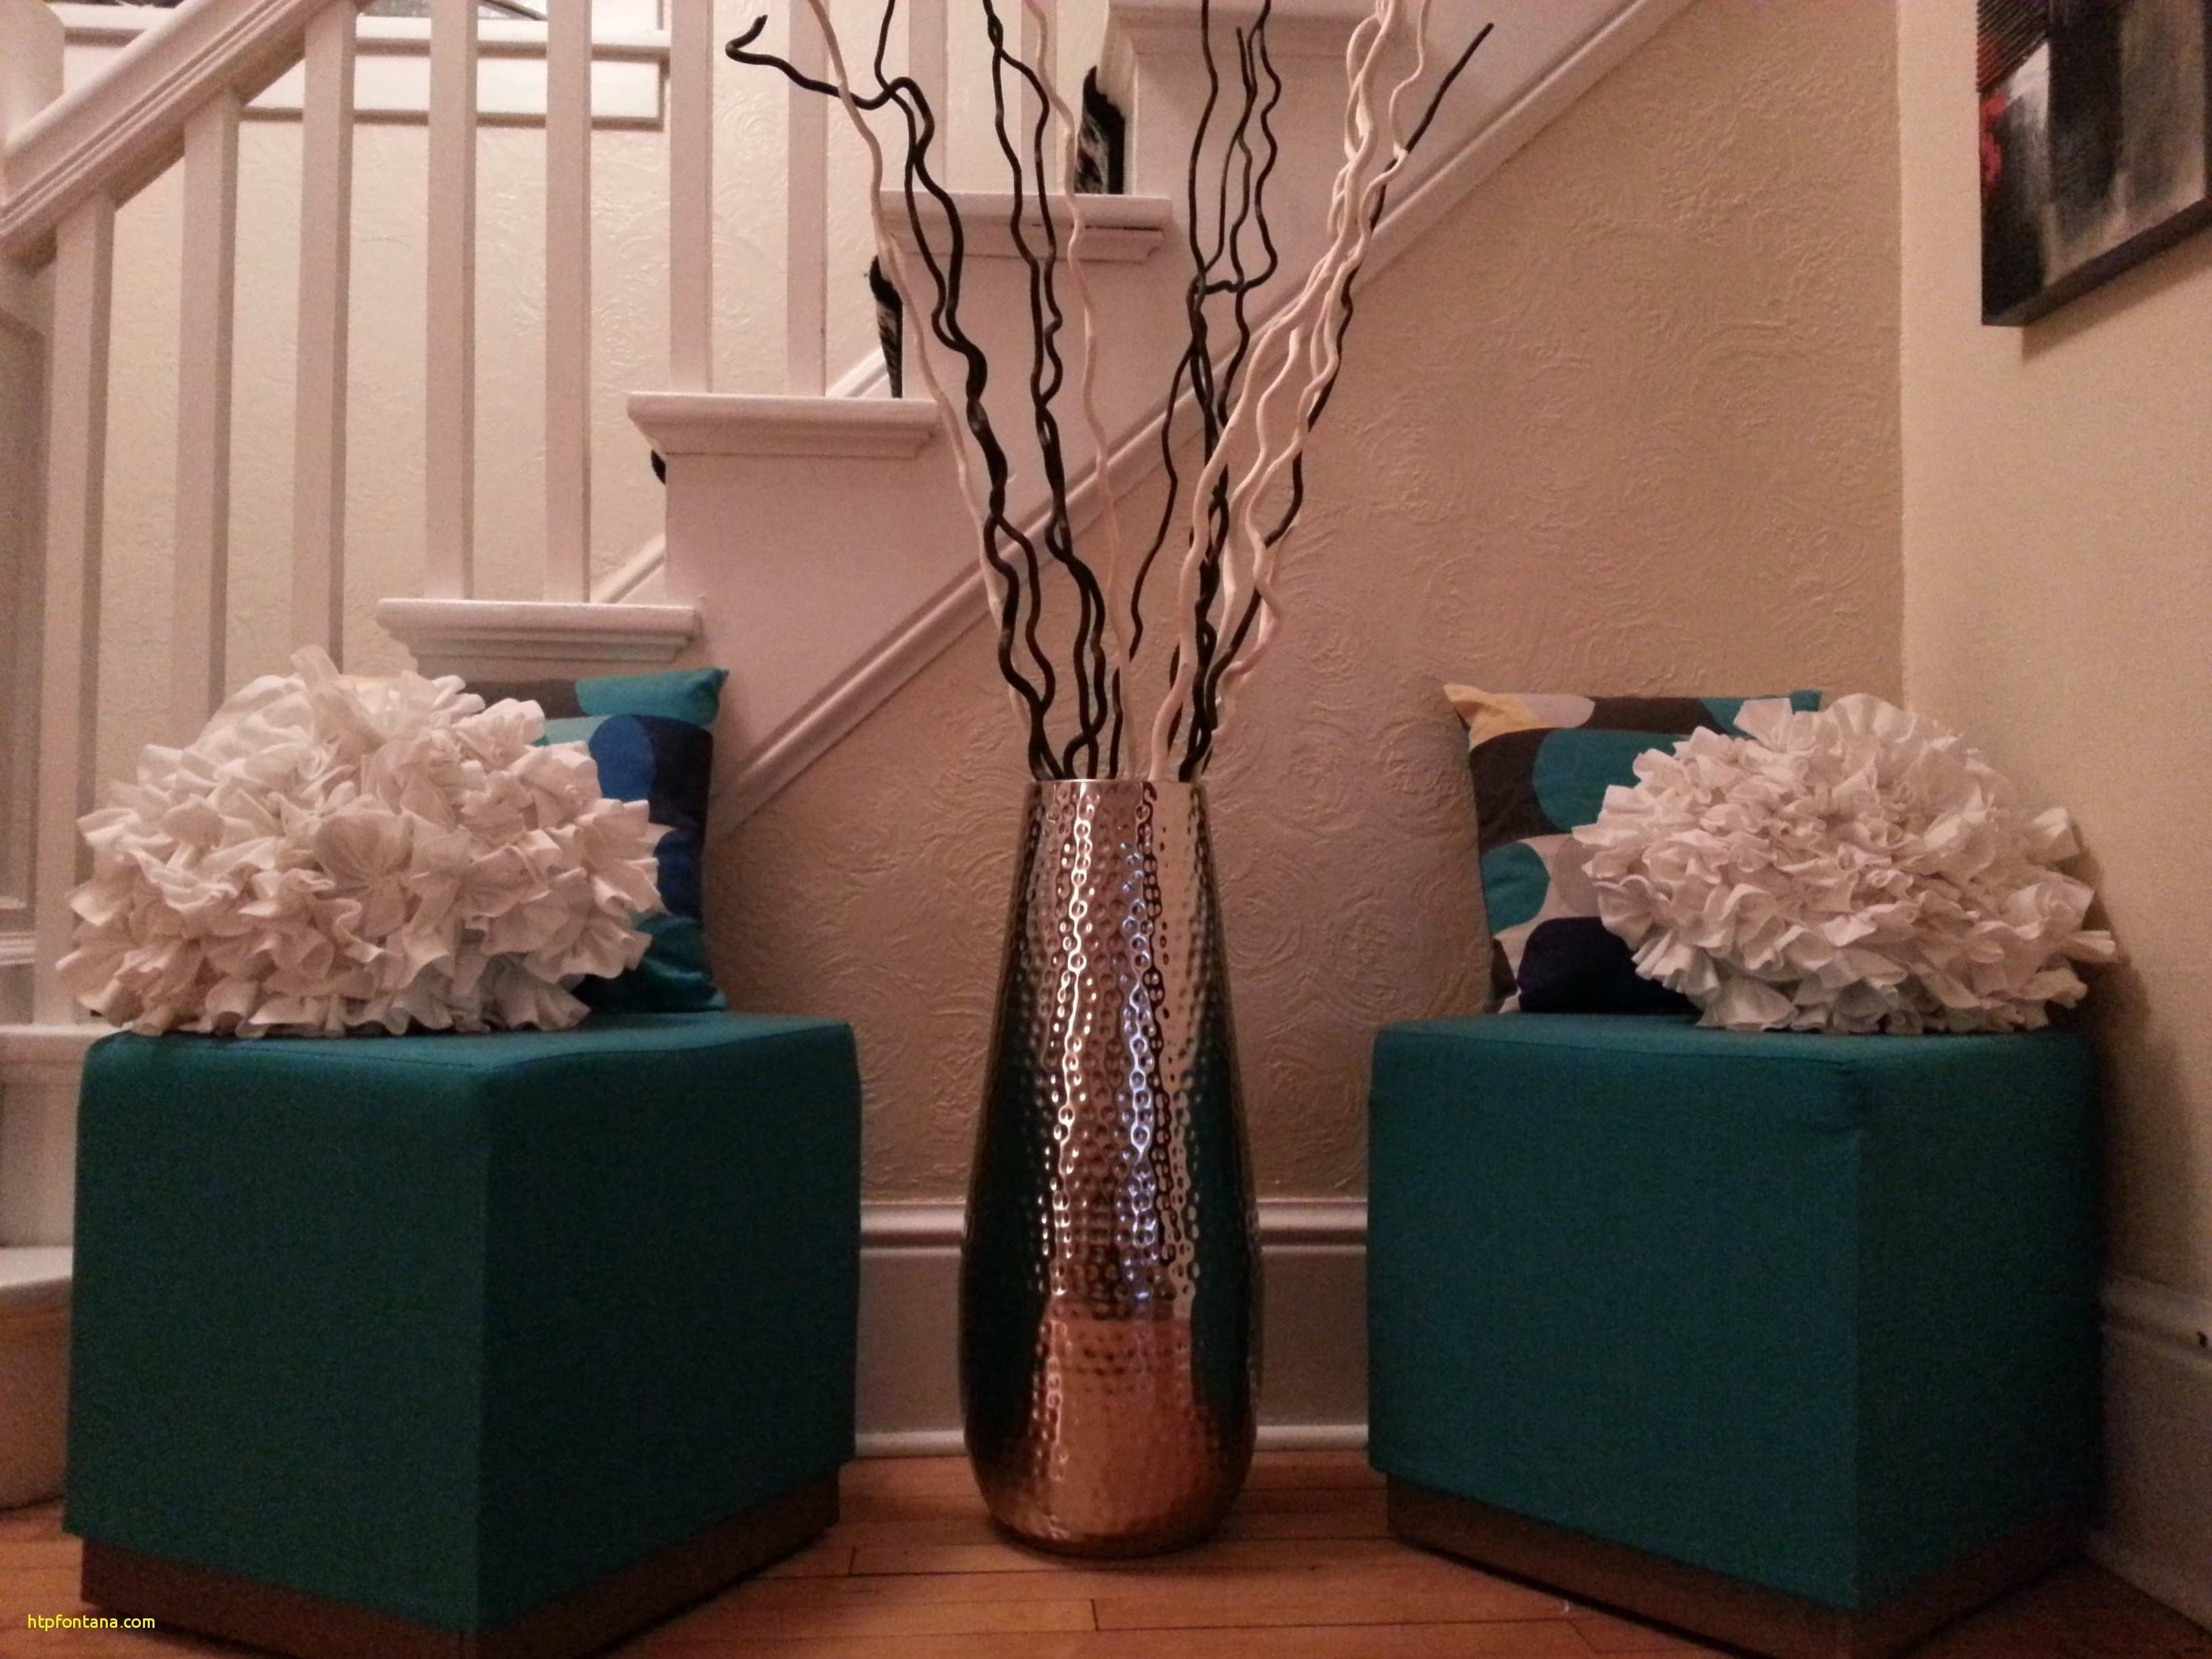 Tall Brown Vase Of Decorating Ideas for Vases Luxury Tall Floor Vase Decoration Ideas Intended for Decorating Ideas for Vases Elegant Modern Living Room Vases Beautiful Flower Vase for Decoration Idea Of